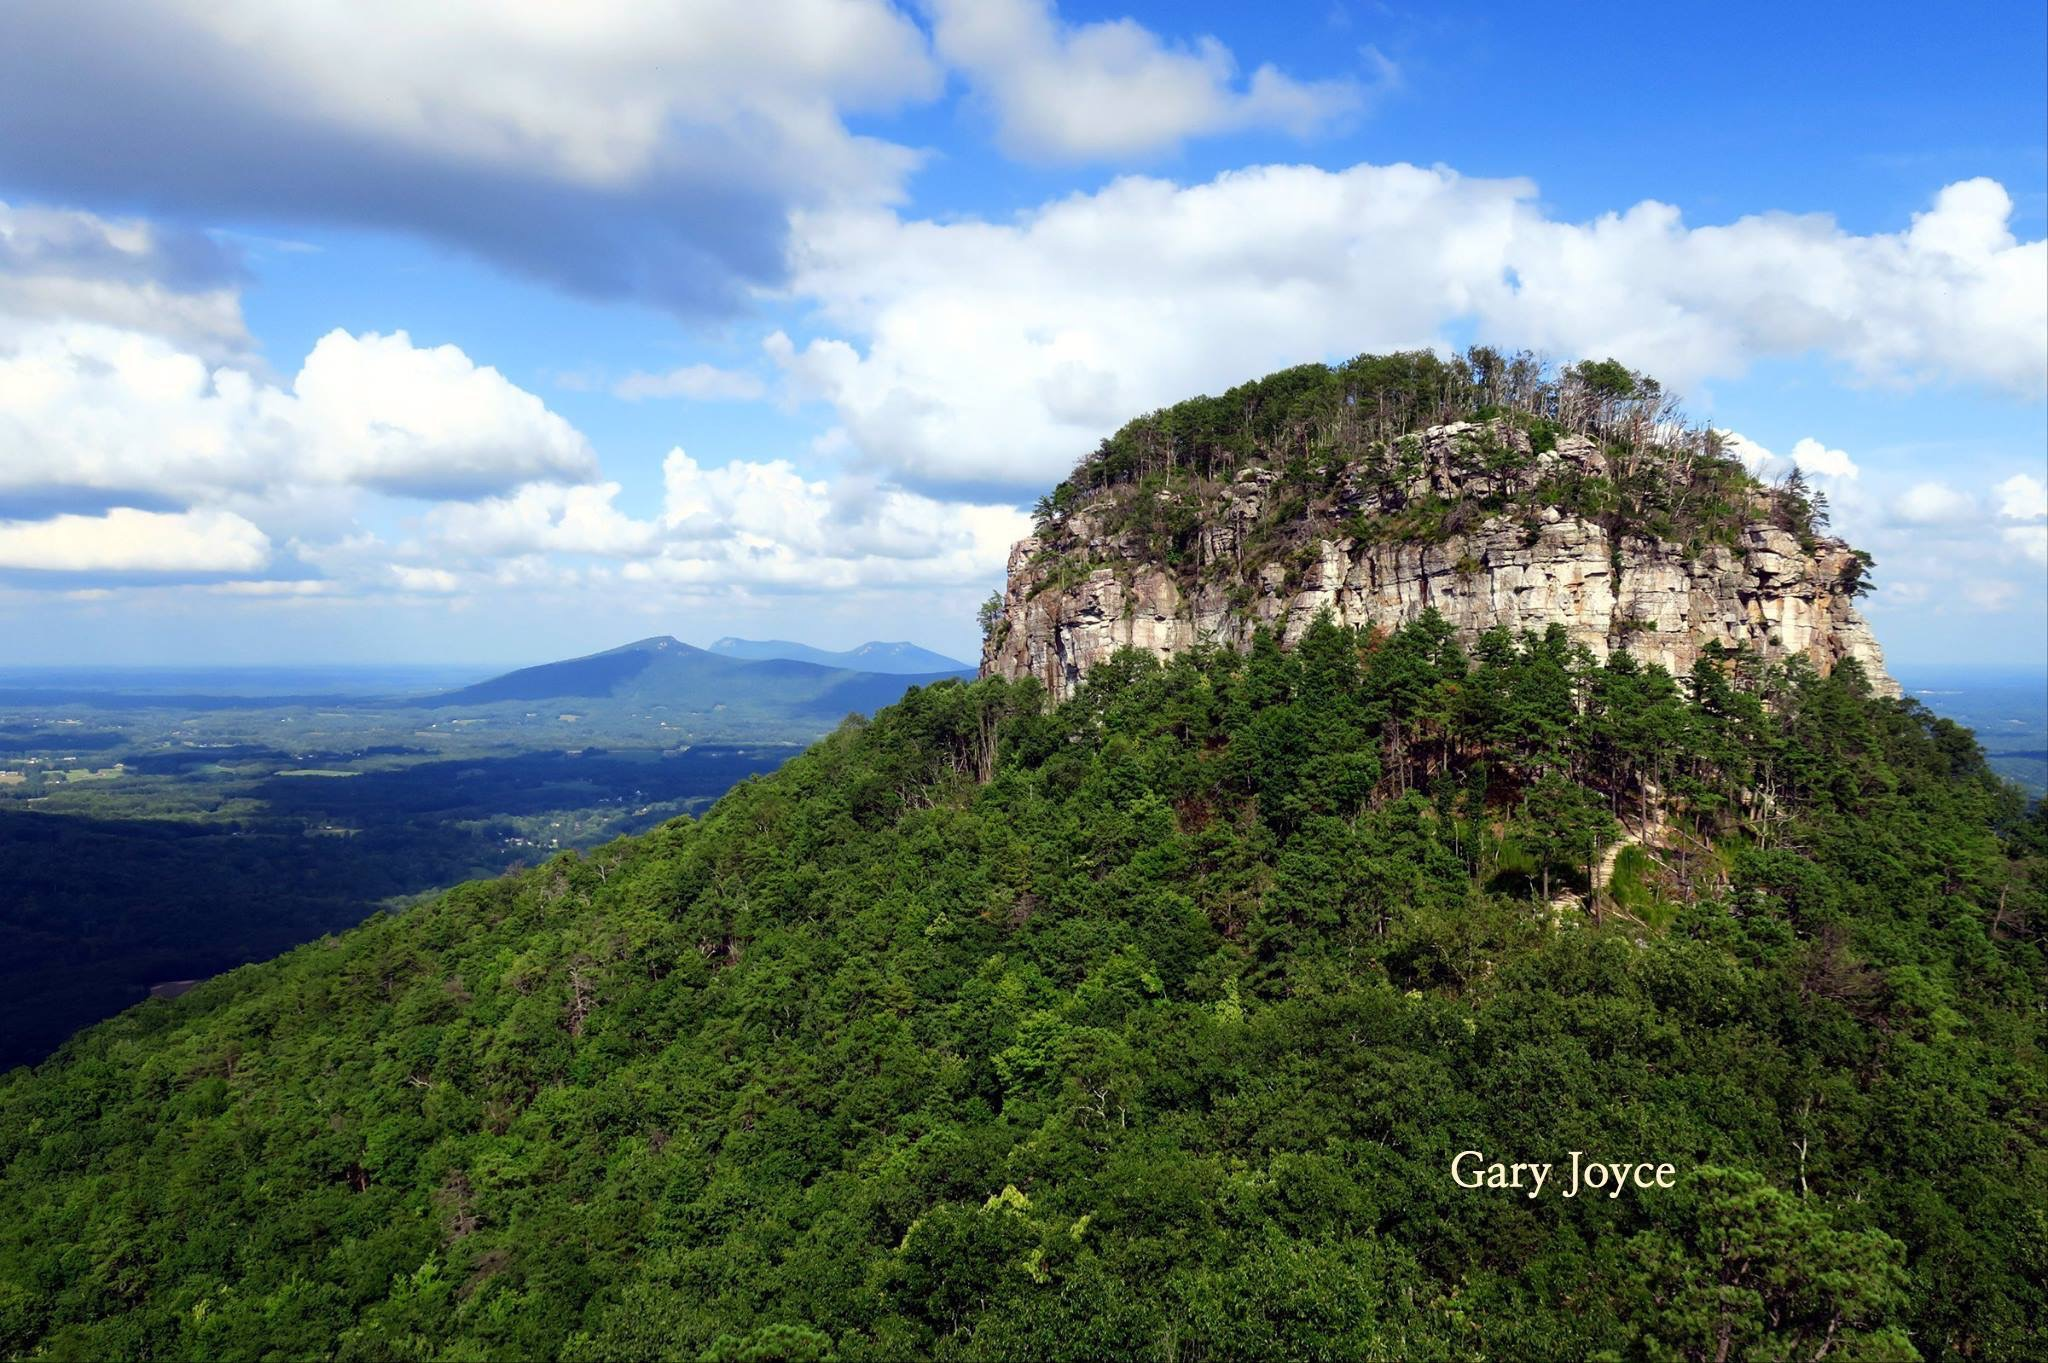 Pilot Mountain. Photo by Gary Joyce.